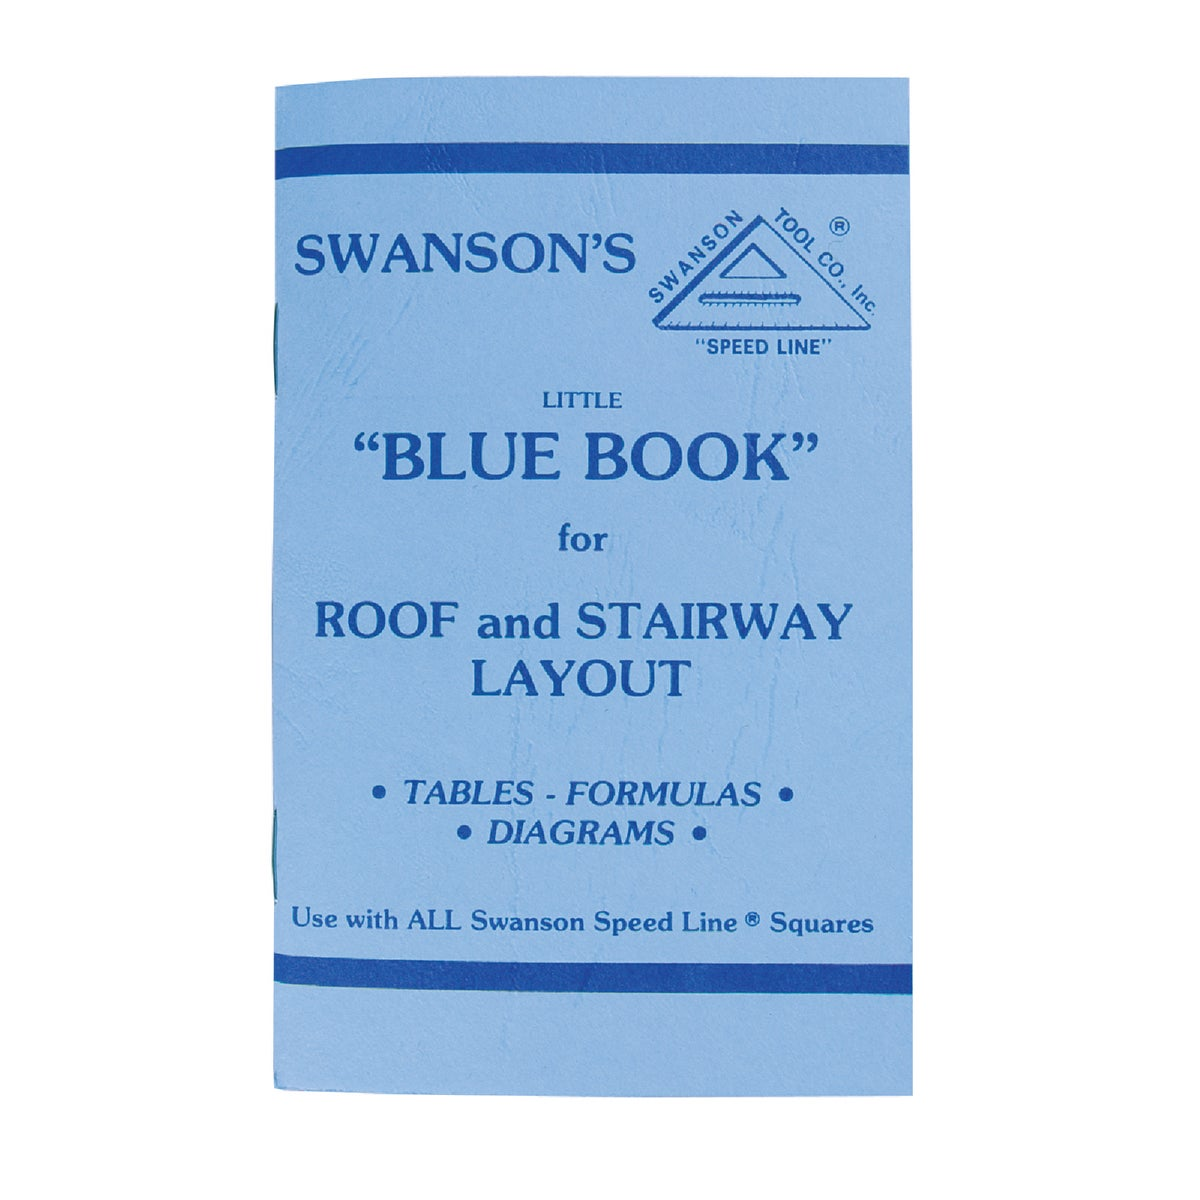 RAFTER SQUARE BOOK - P0110 by Swanson Tool Co